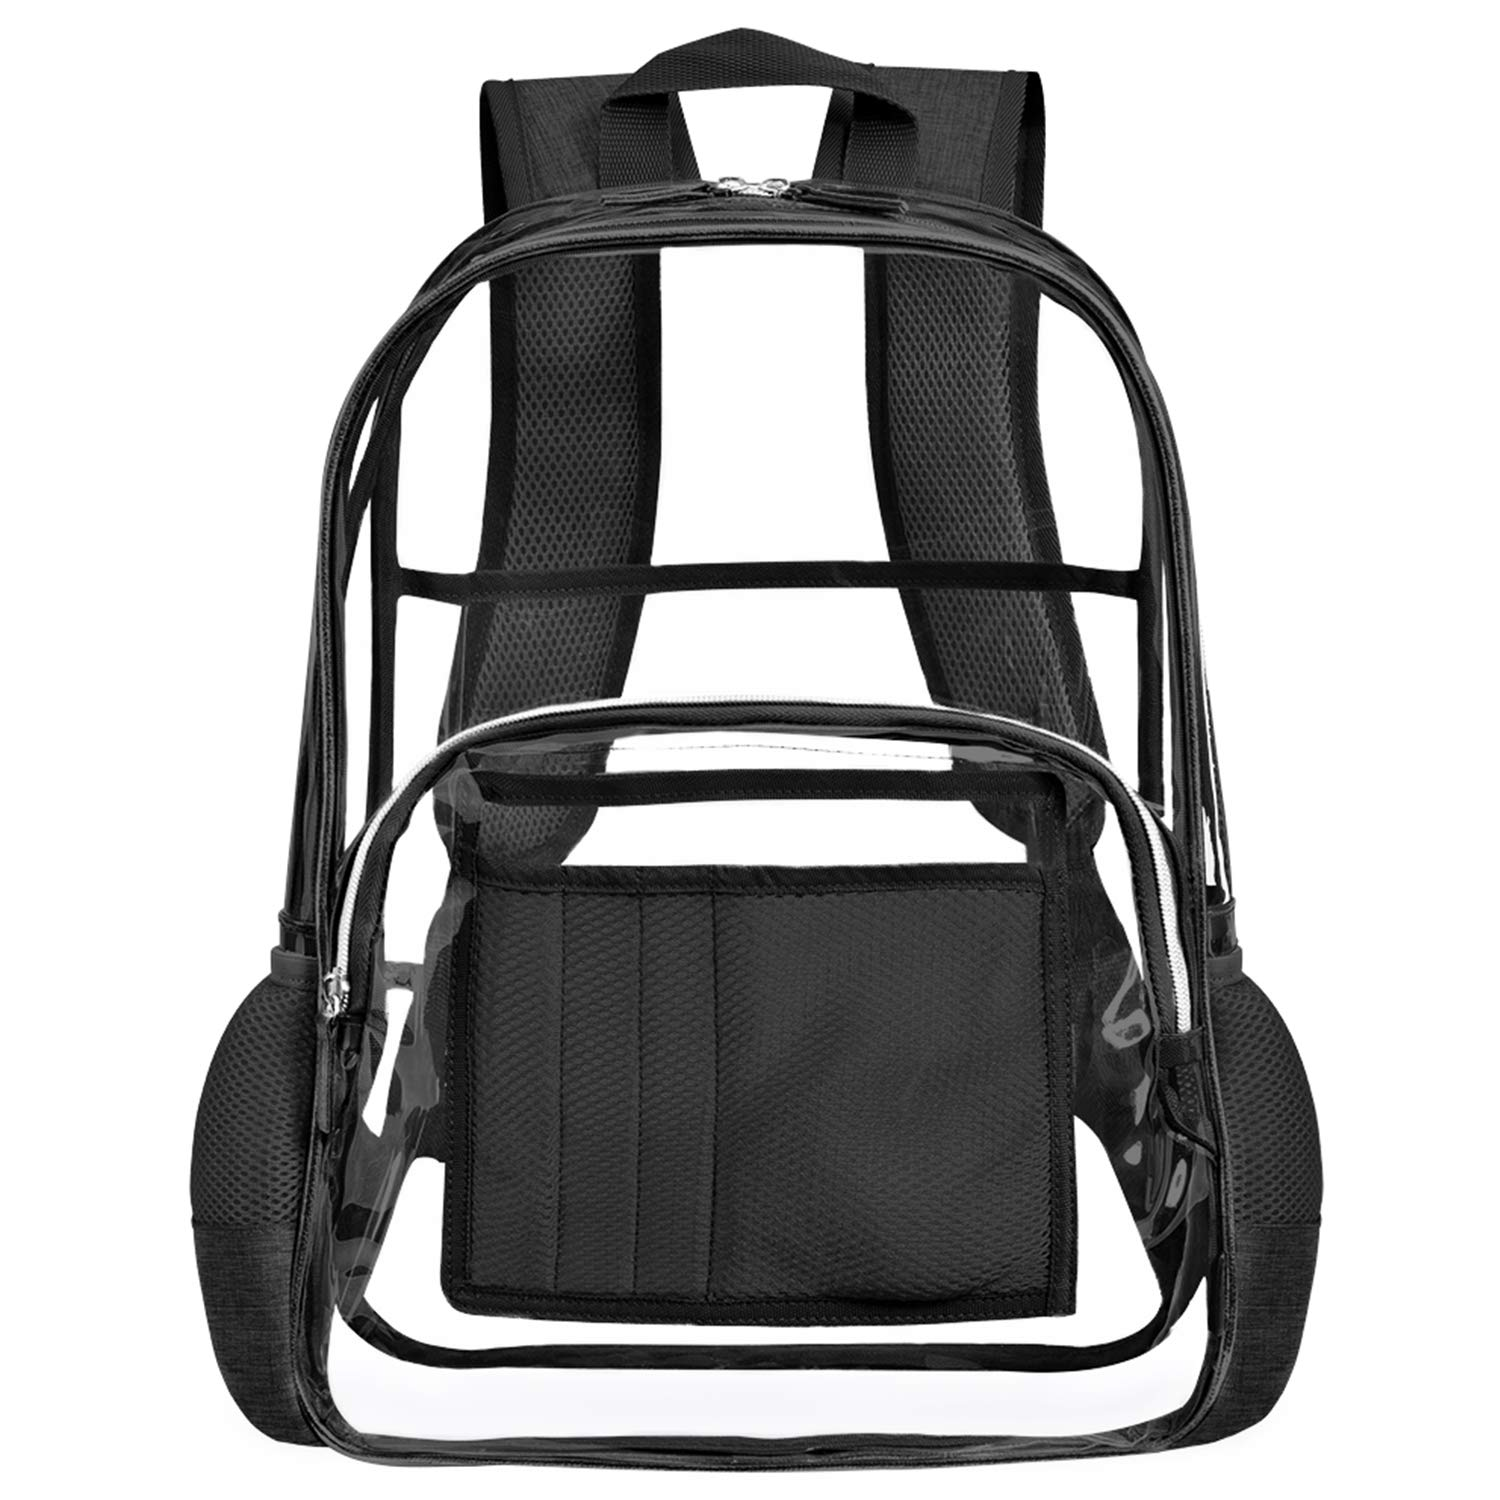 Clear Backpack for Women and Men Fit 15.6 inch Laptop See Through College School Bag for Student Cute Bookbag for Kids Girls Boys Transparent PVC Knapsack Daypack for Travel Work Gym Hiking,Black